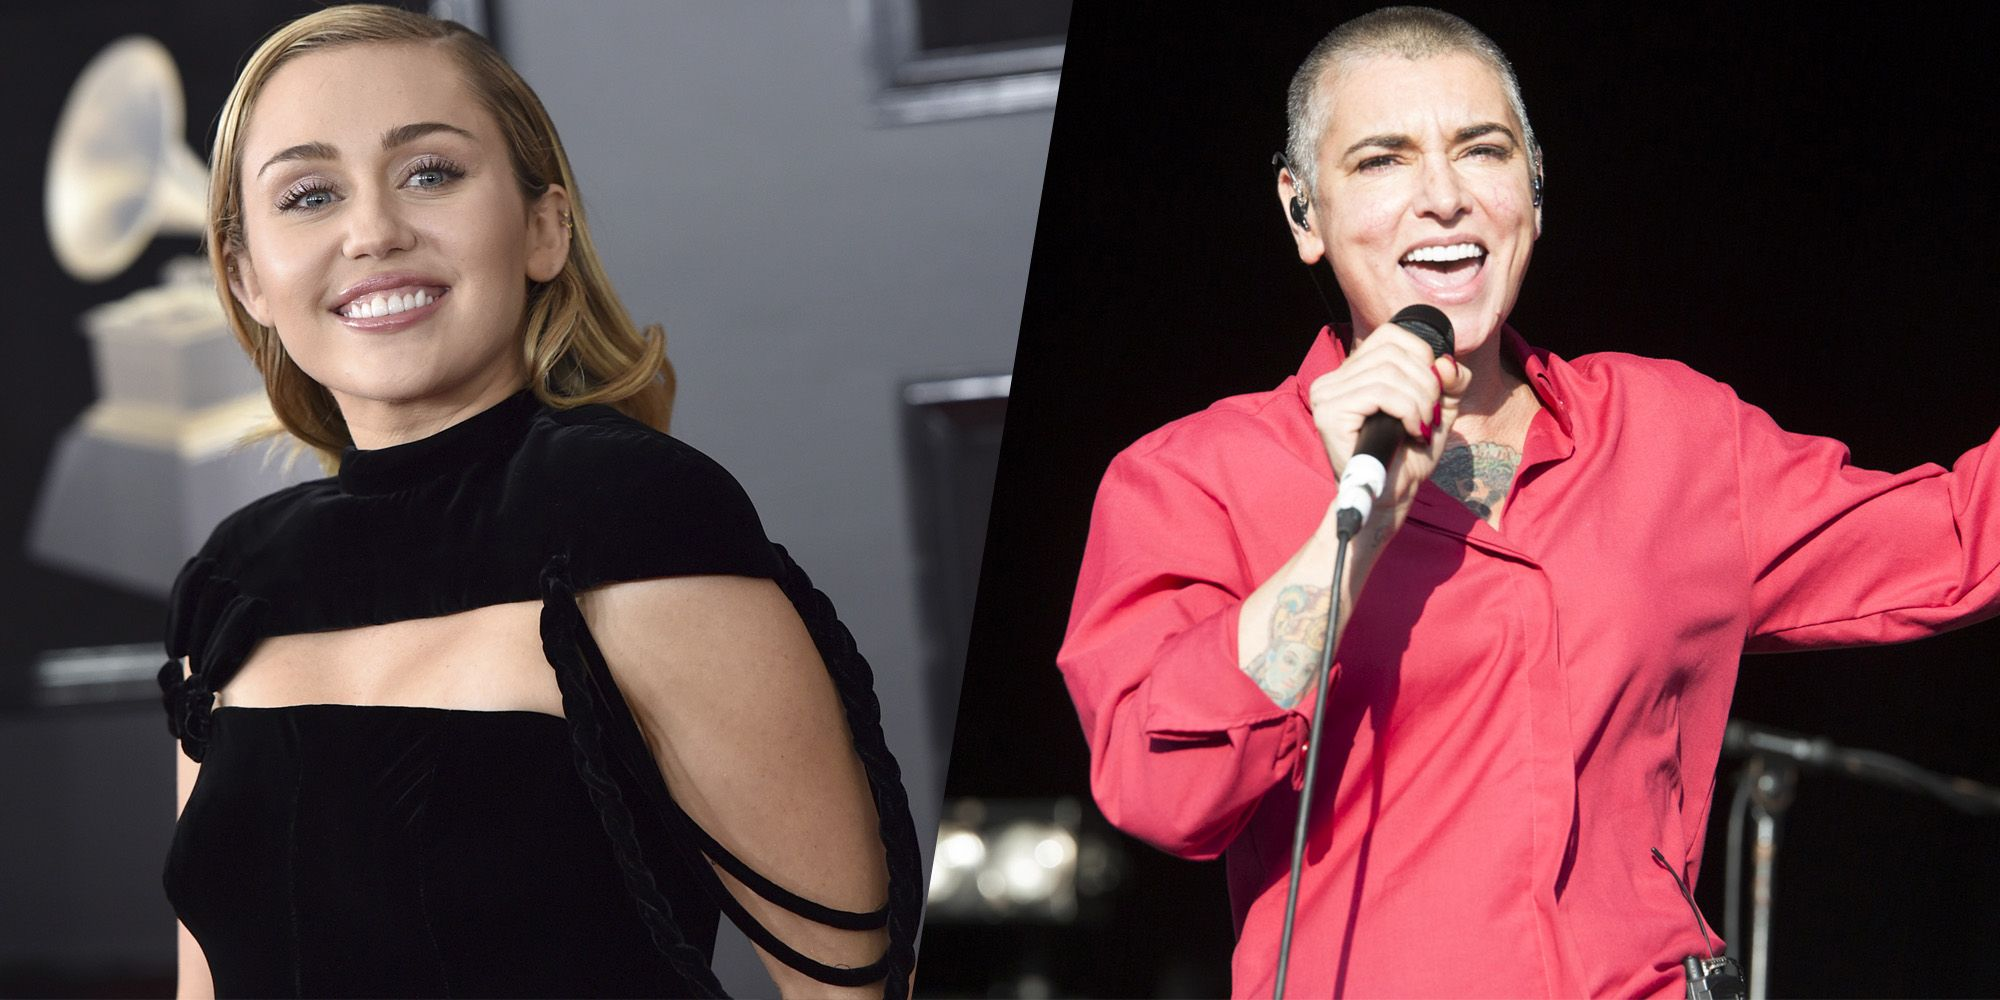 The Biggest Celebrity Feuds of All Time - Best Fights in Pop Music